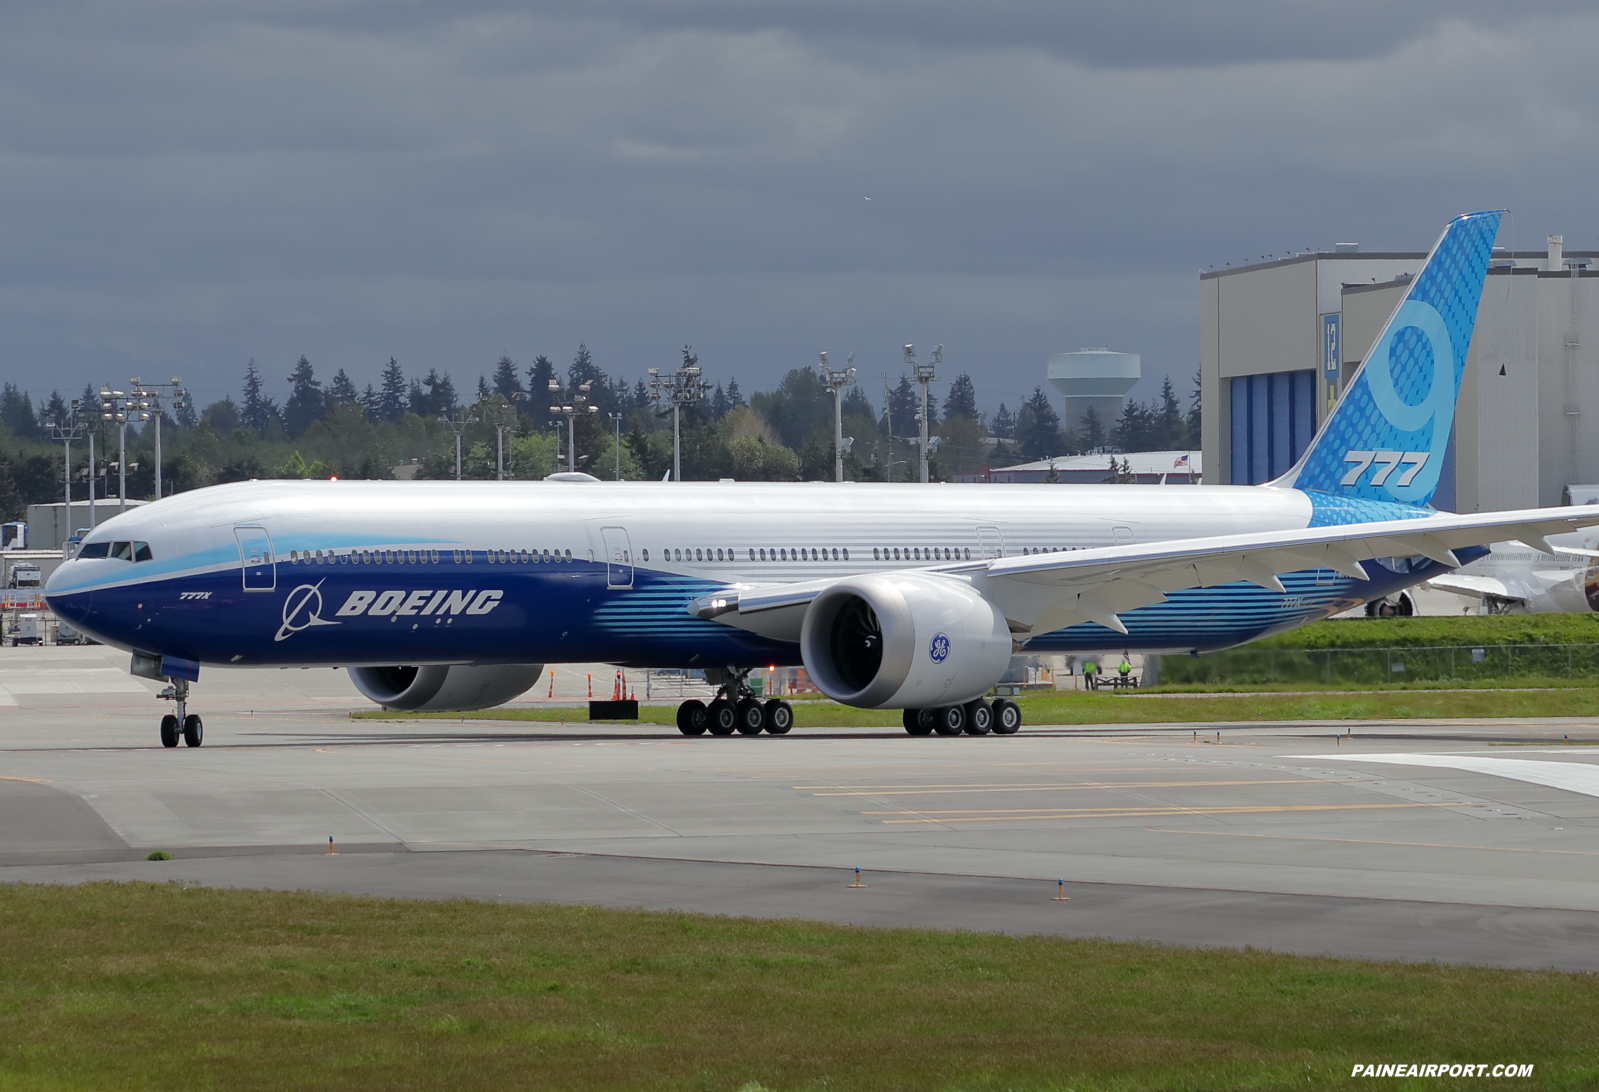 777-9 N779XX at Paine Field